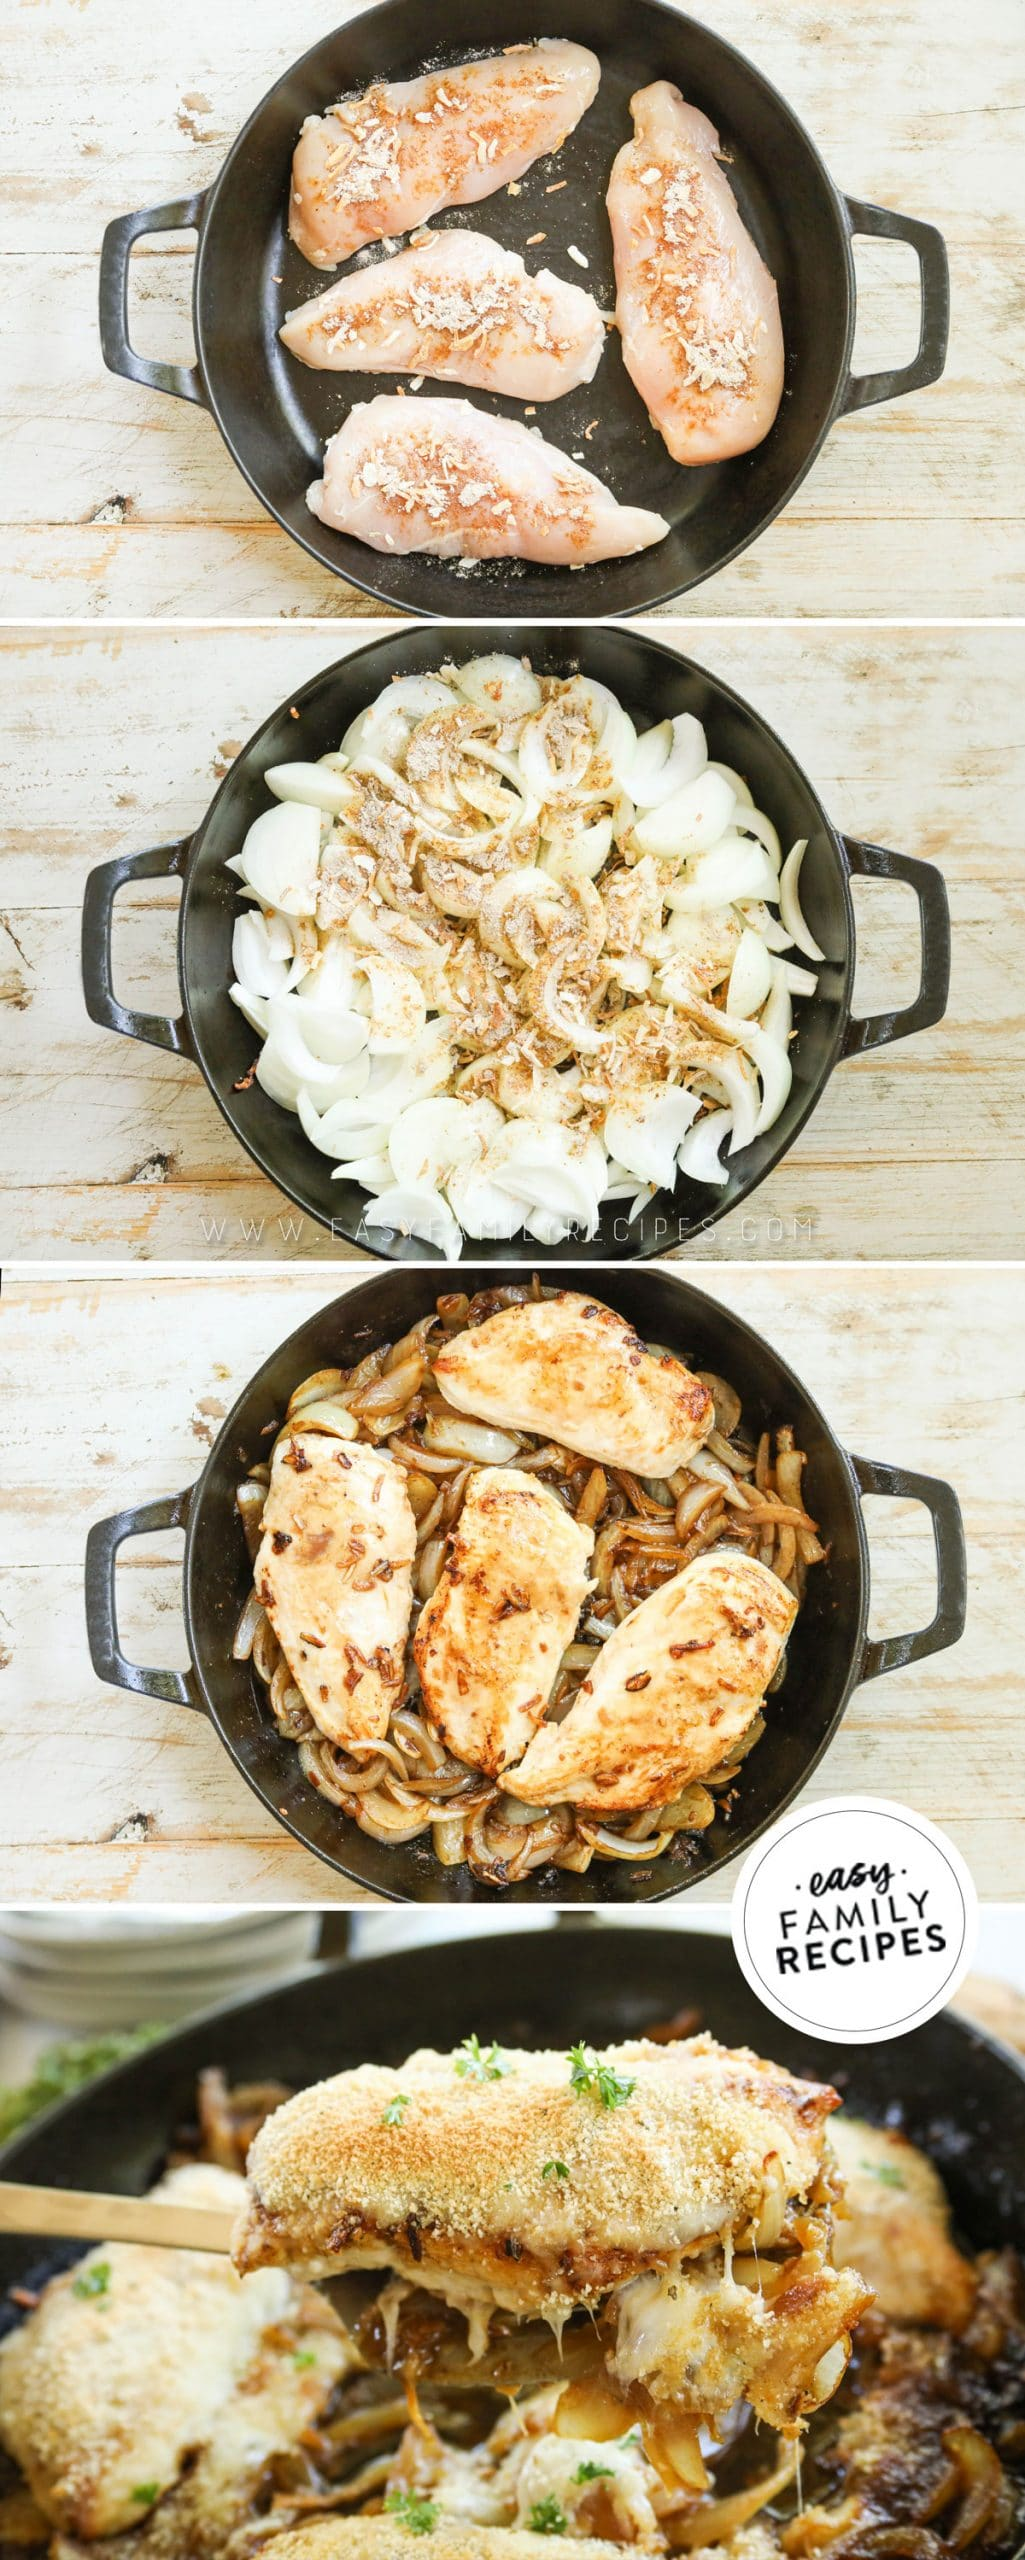 Process photos for how to make French Onion Chicken- 1. Season Chicken Breasts and brown in skillet. 2. Slice onions and caramelize. Add chicken back and top with cheese. 4. Top with bread crumbs and bake.